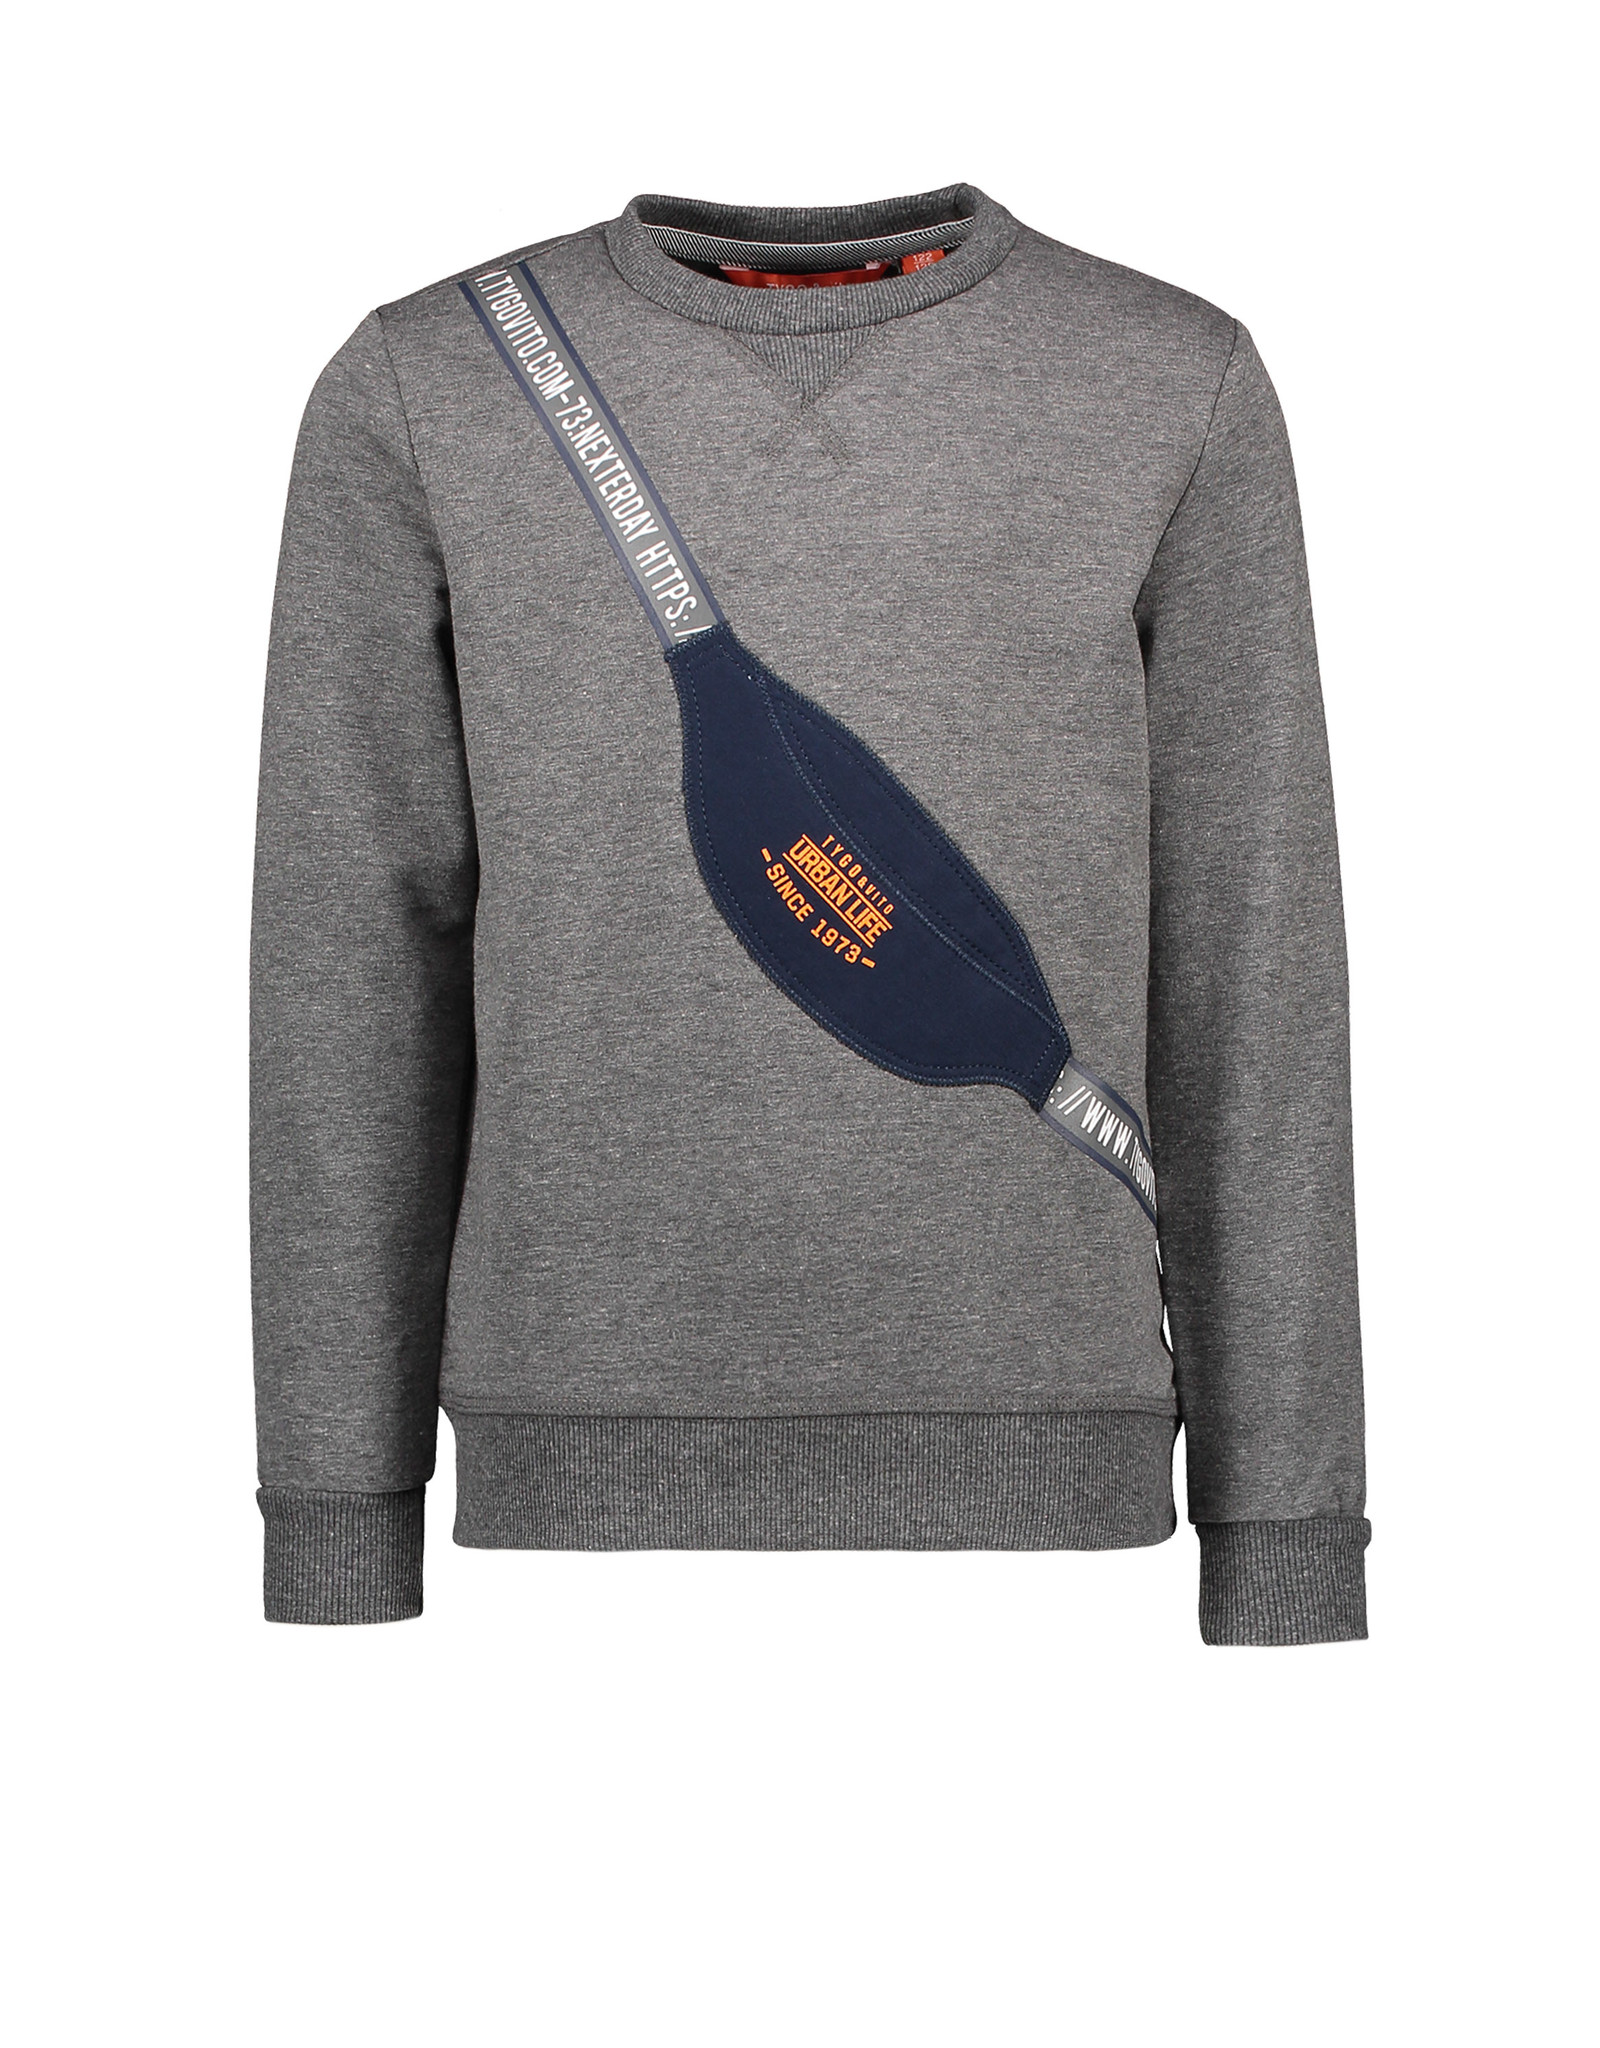 Tygo & Vito T&v sweater patched bag